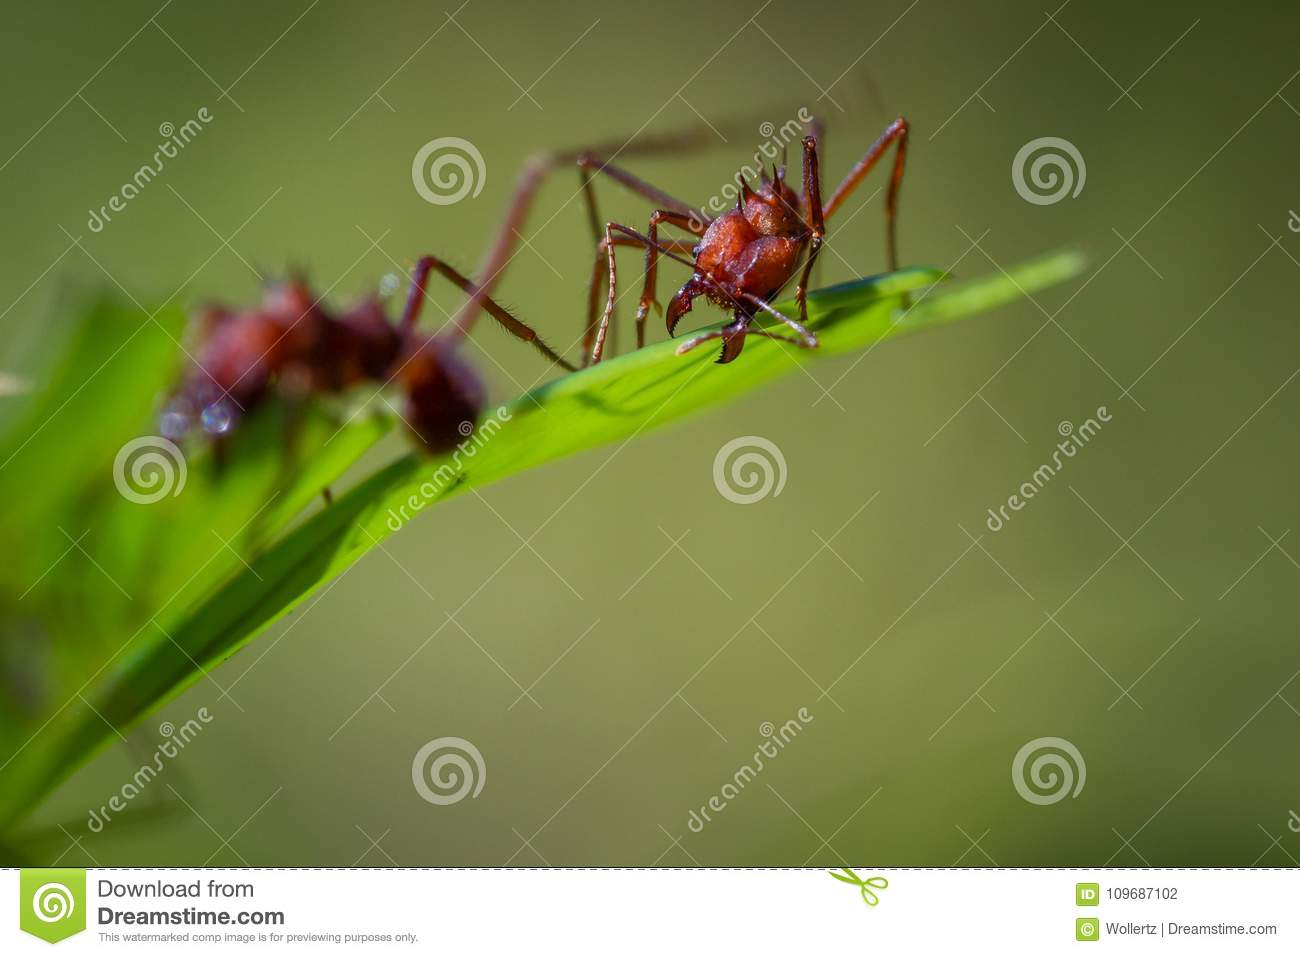 Leaf cutter ants stock photo  Image of destructive, outdoor